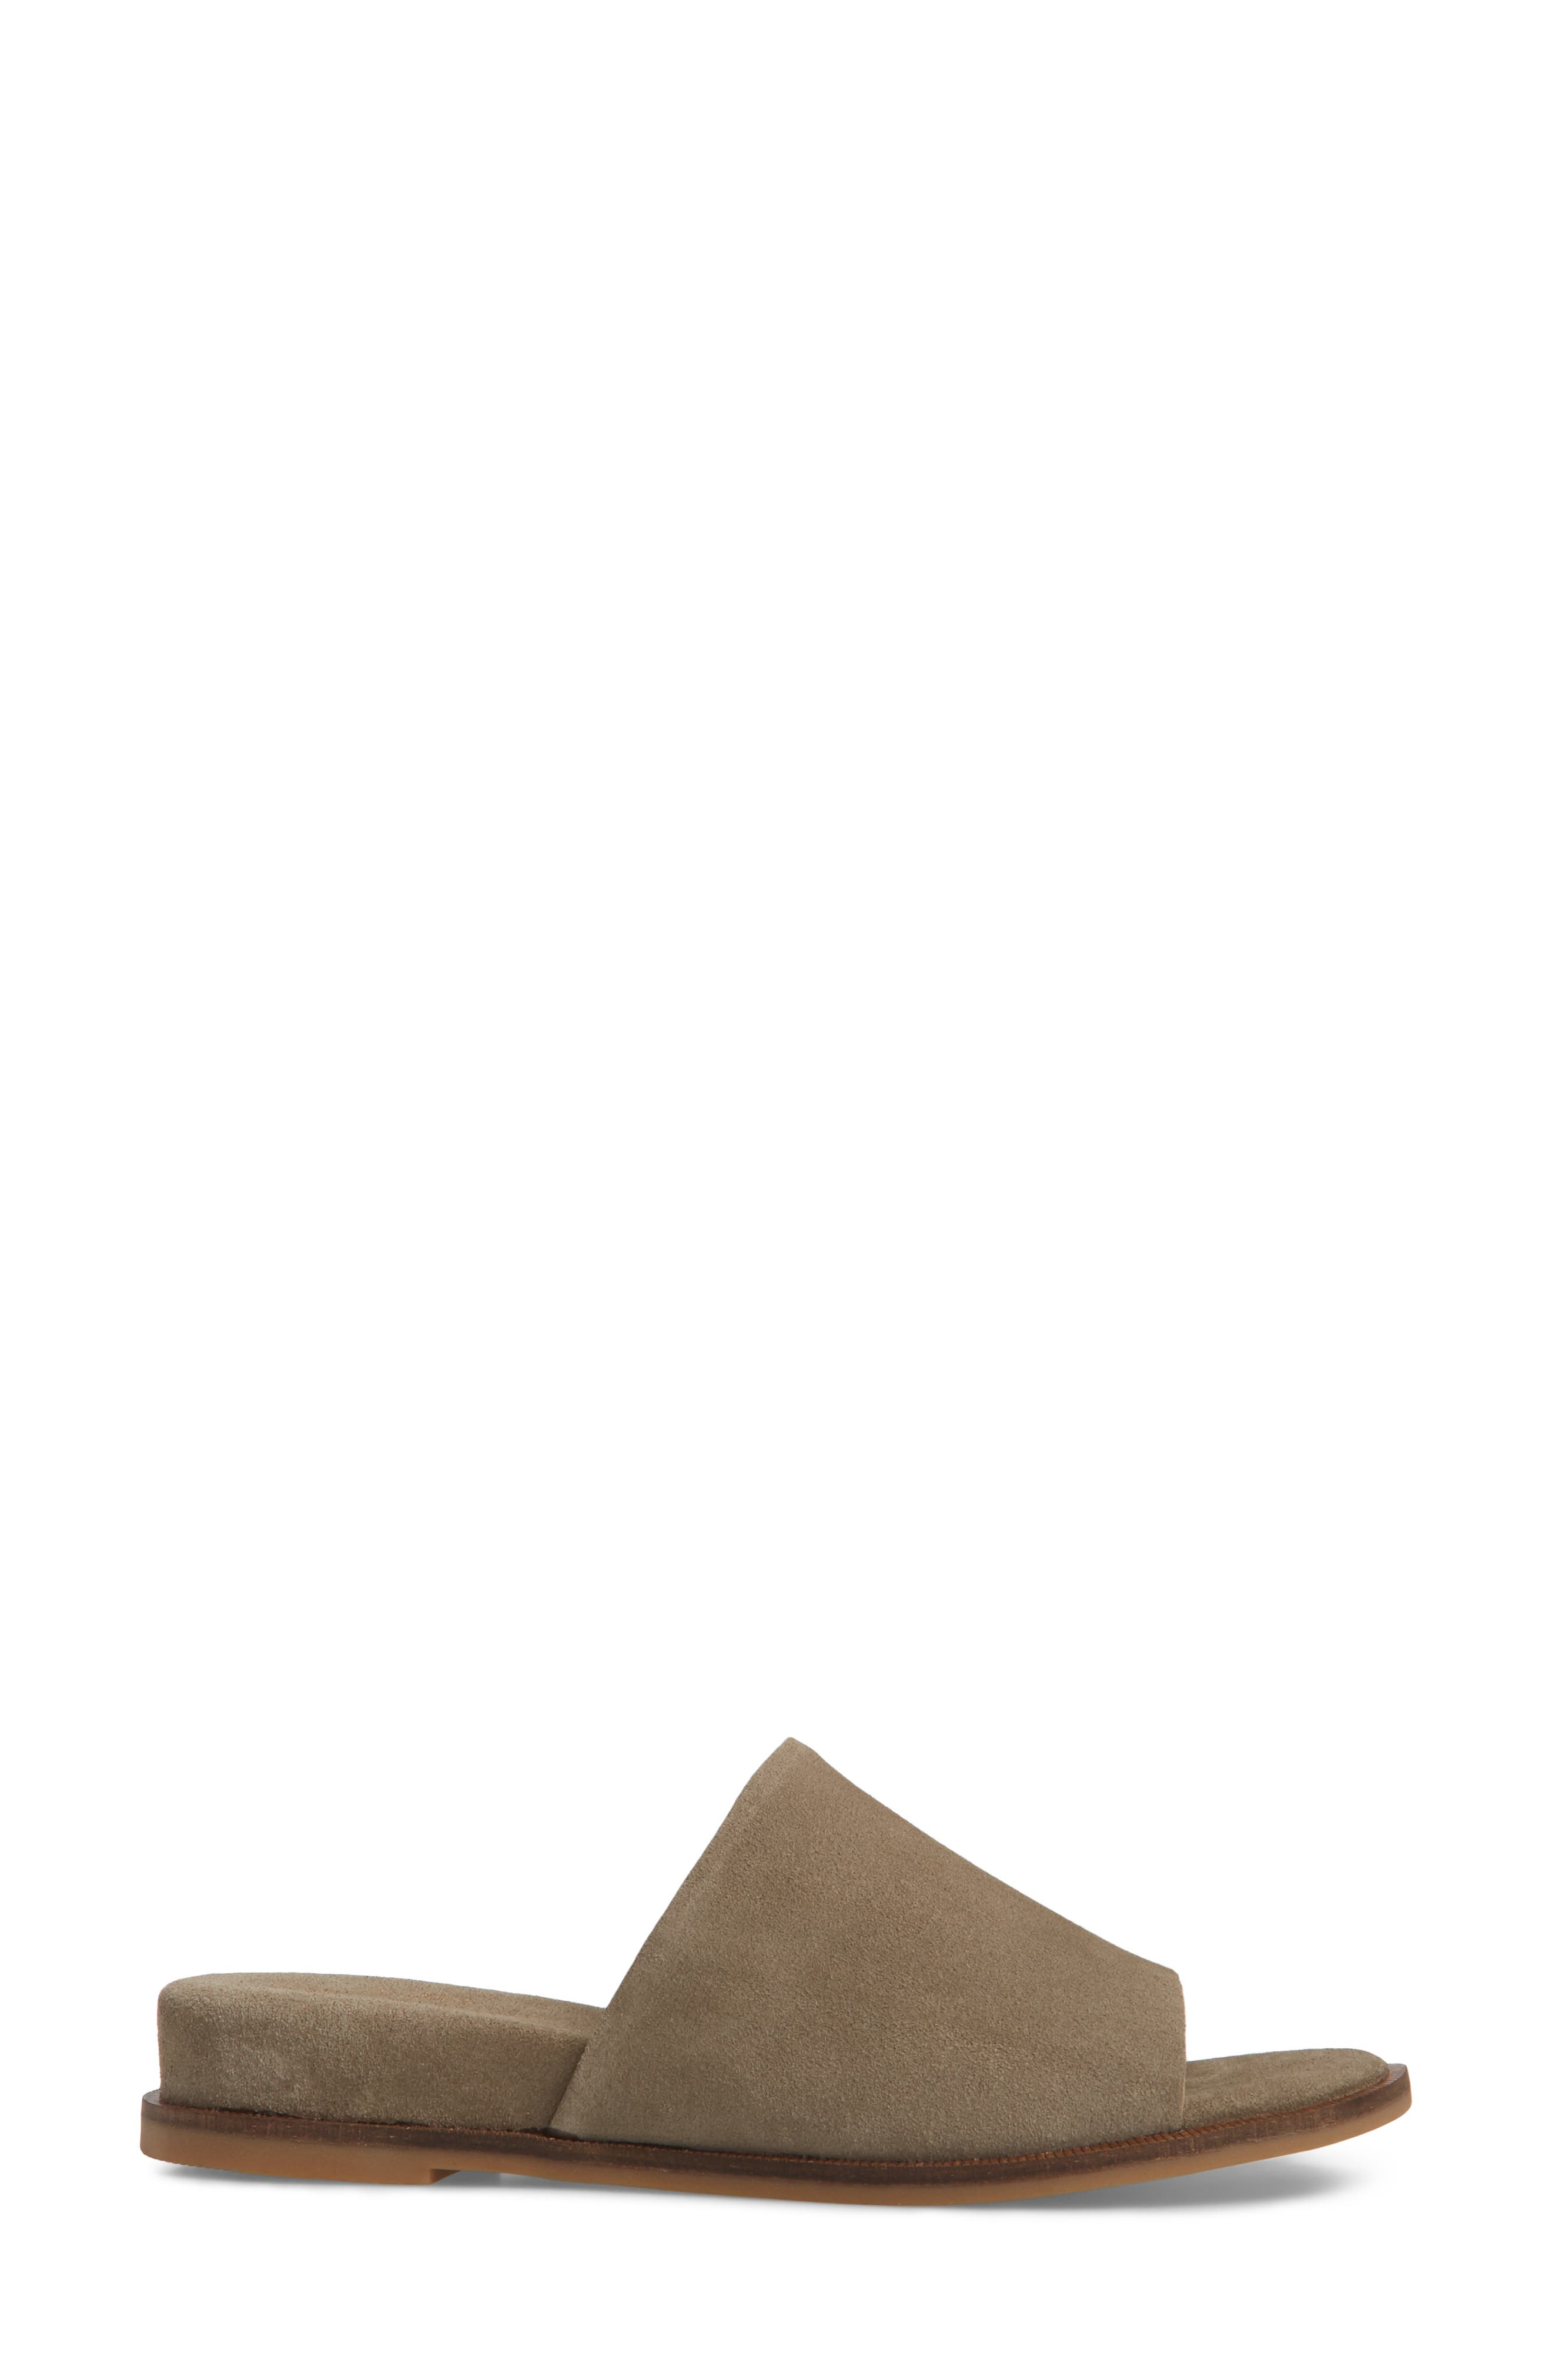 Relaxing Wedge Slide Sandal,                             Alternate thumbnail 3, color,                             TAUPE LEATHER